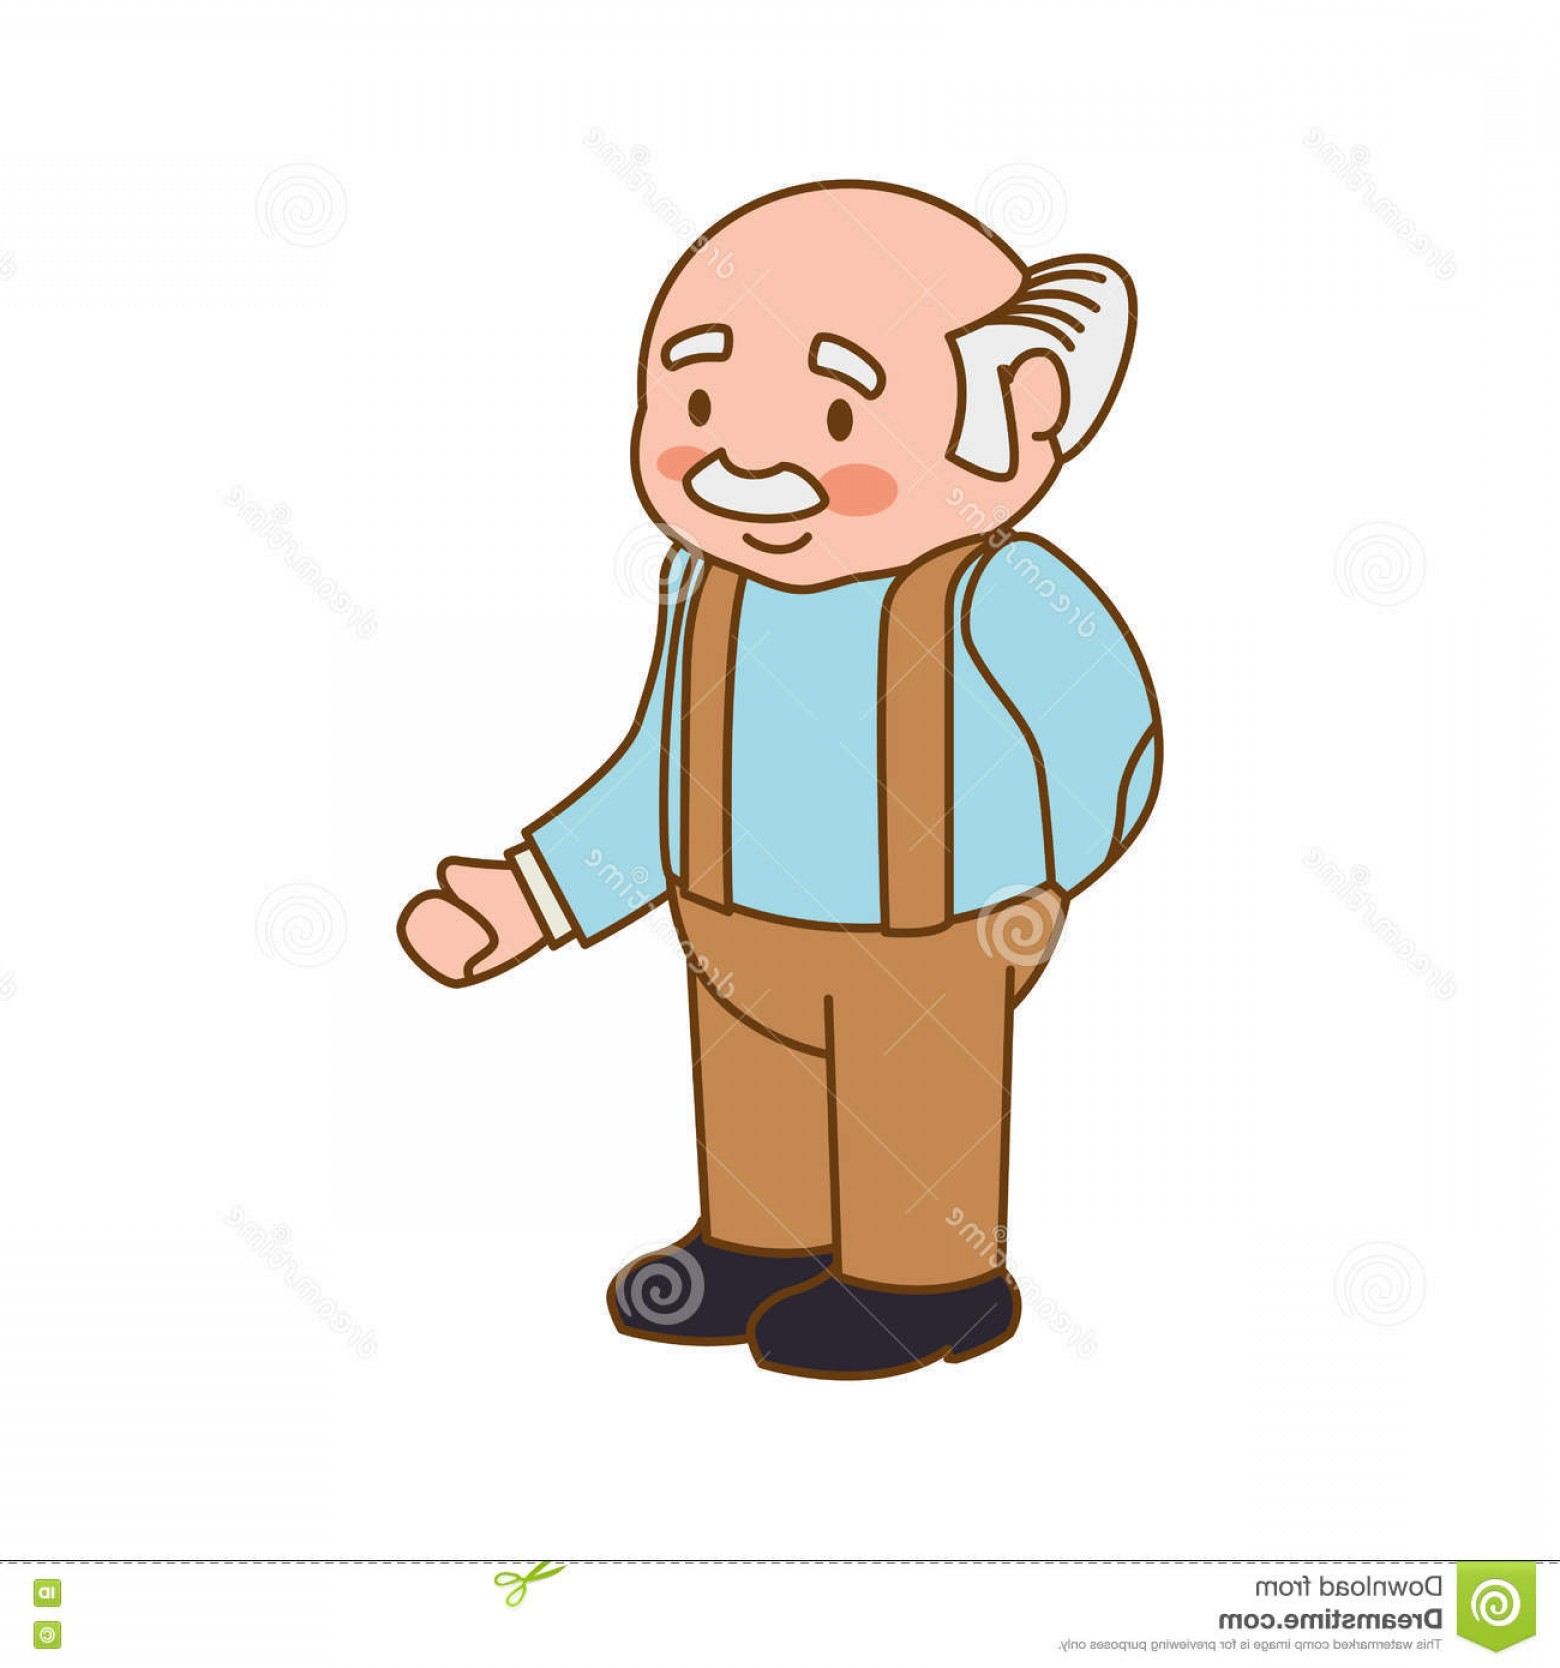 Old Male Icon Vector: Stock Illustration Grandfather Old Person Man Male Icon Vector Graphic Isolated Flat Illustration Image